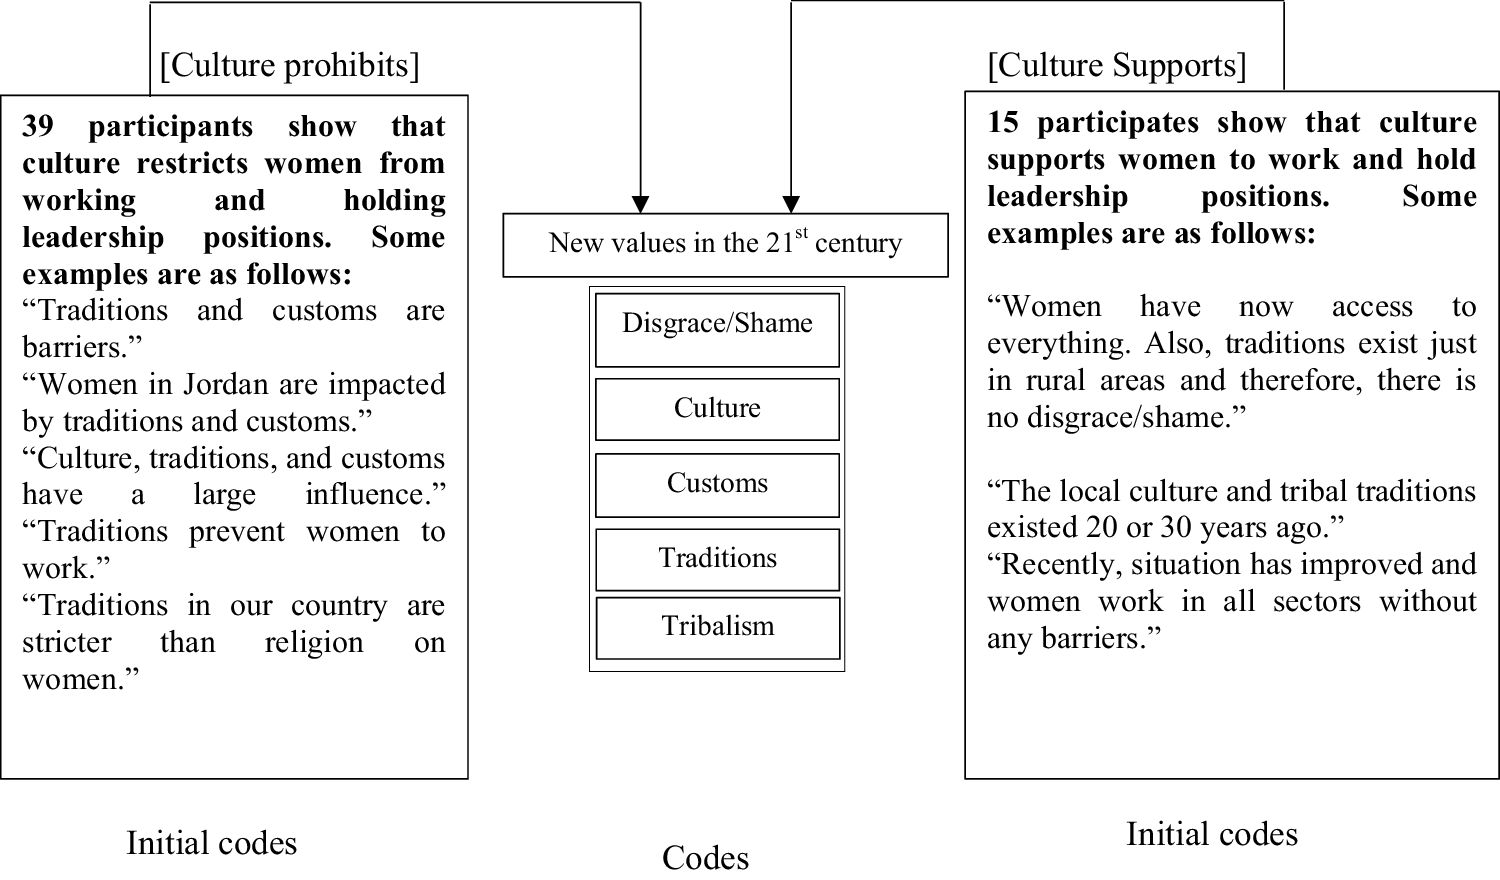 Implications of Religion, Culture, and Legislation for